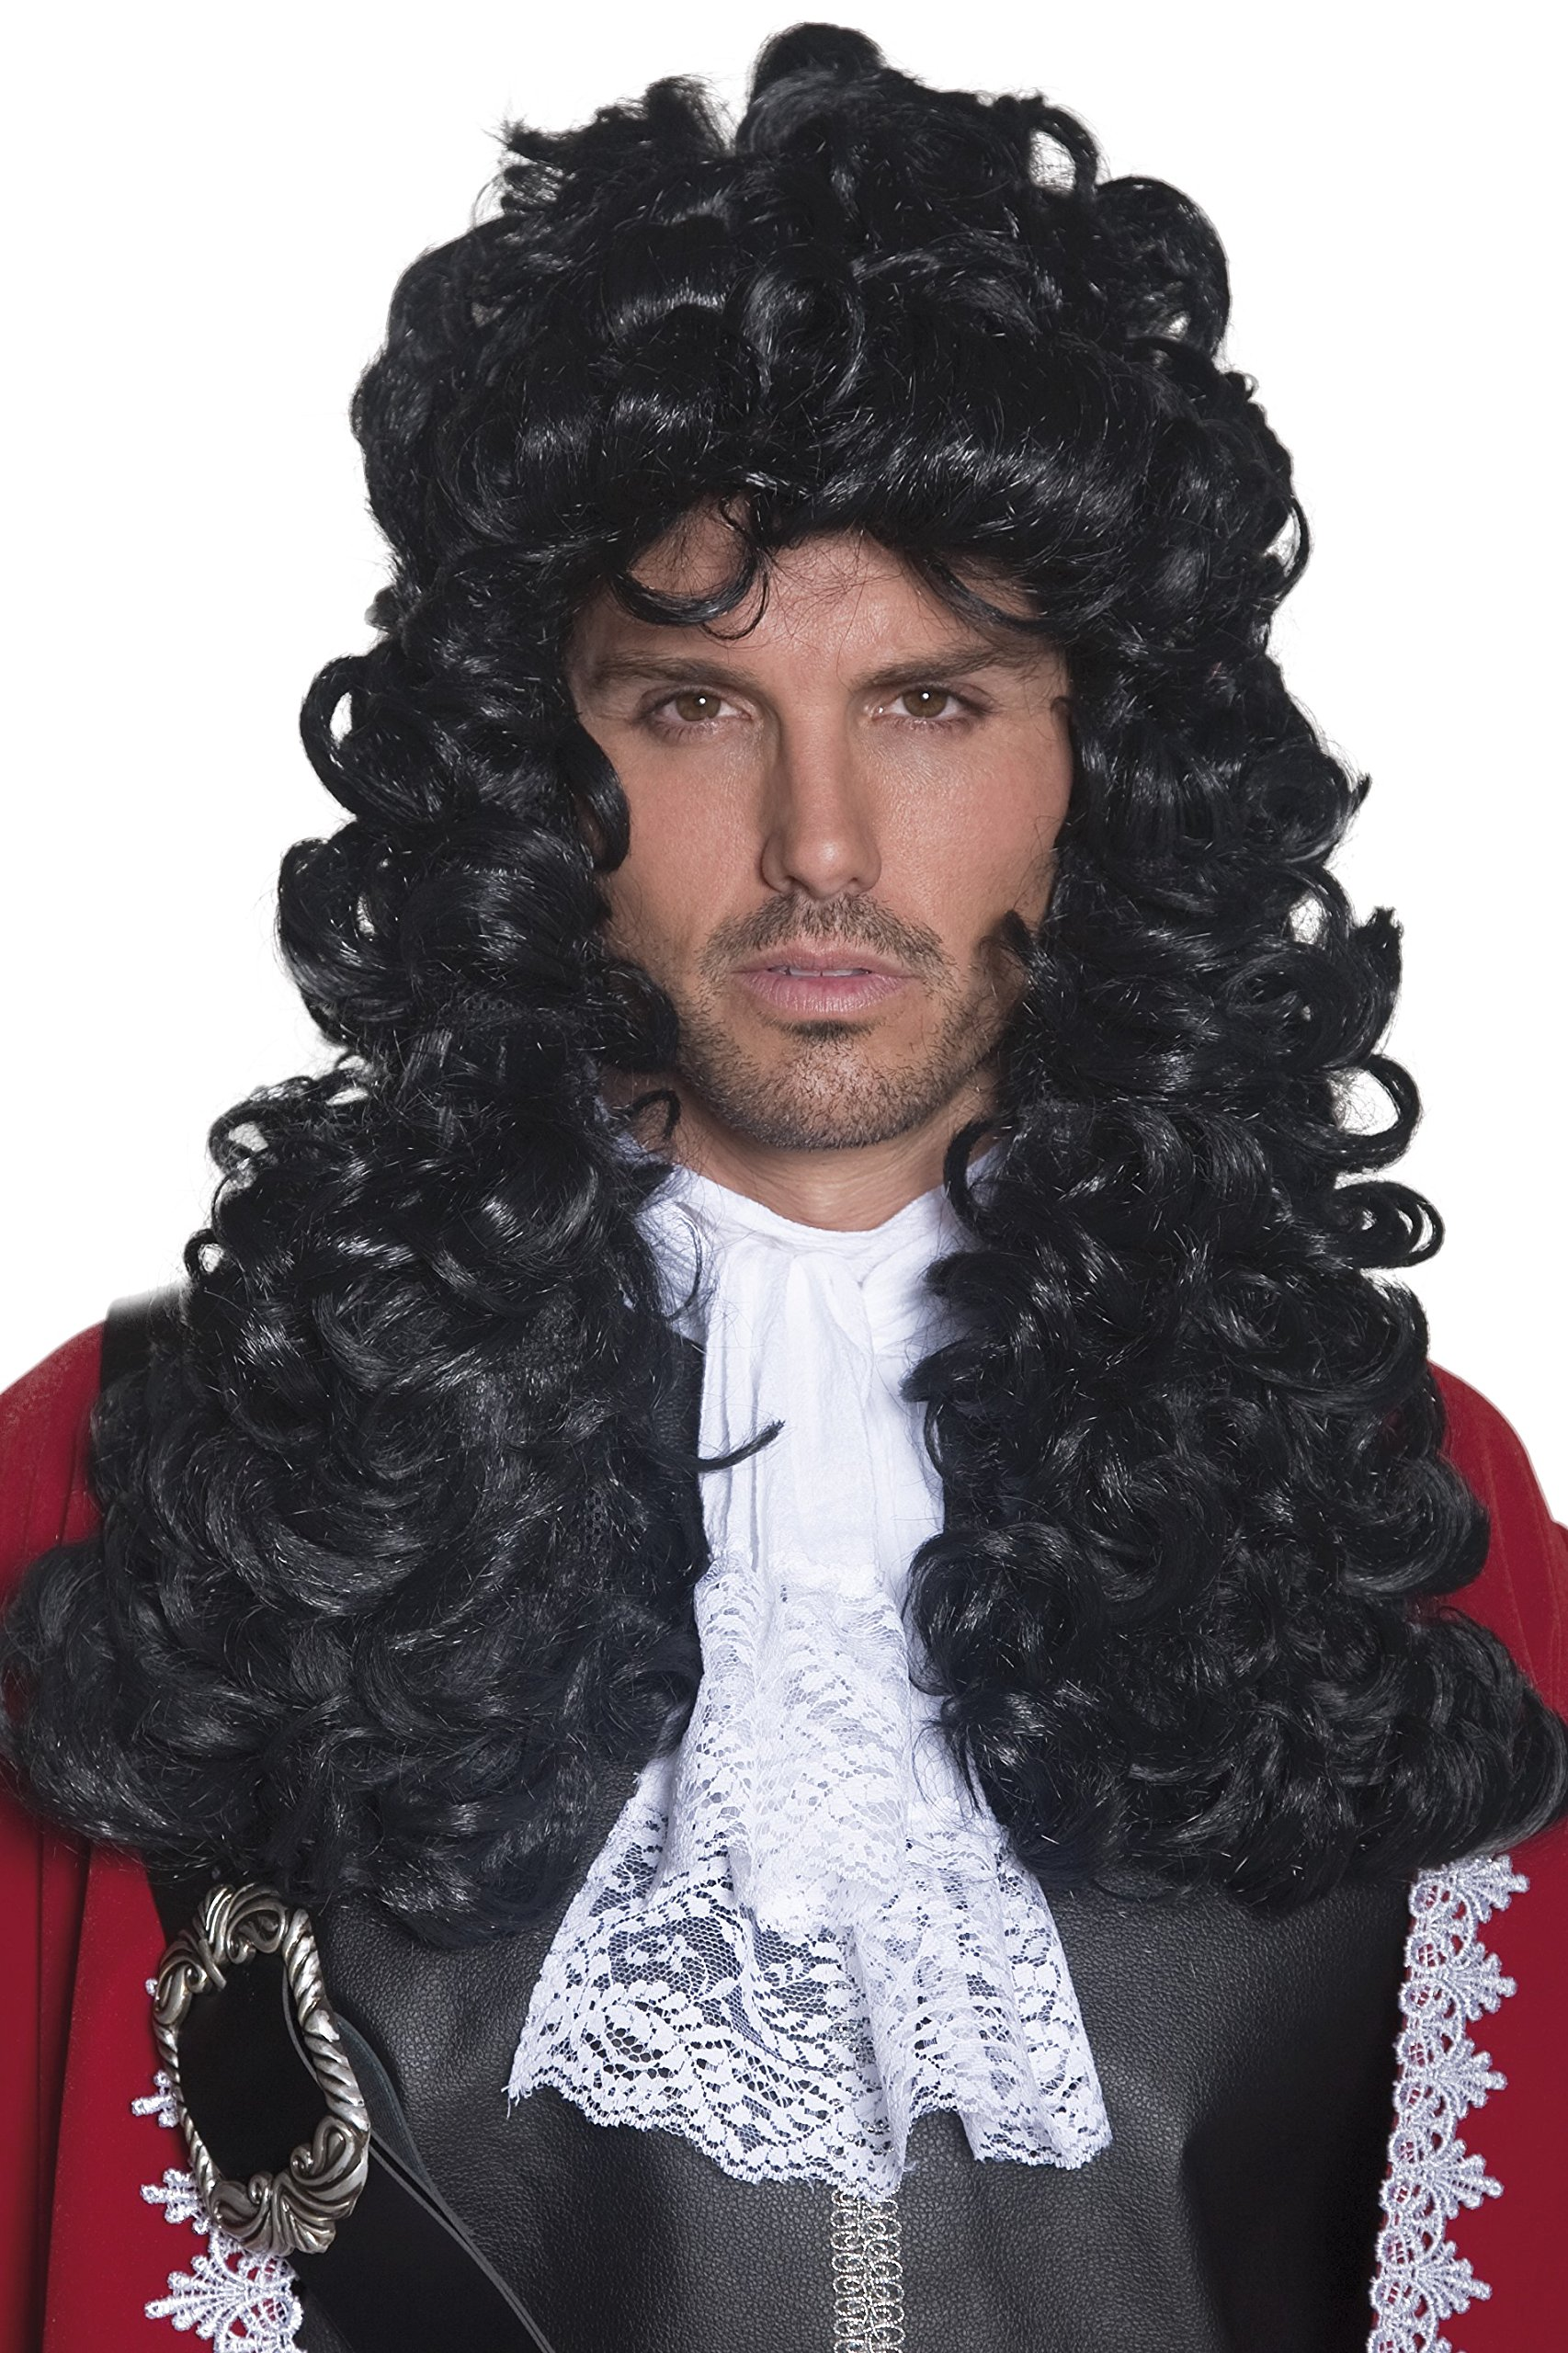 Smiffys Pirate Captain Wig by Smiffys